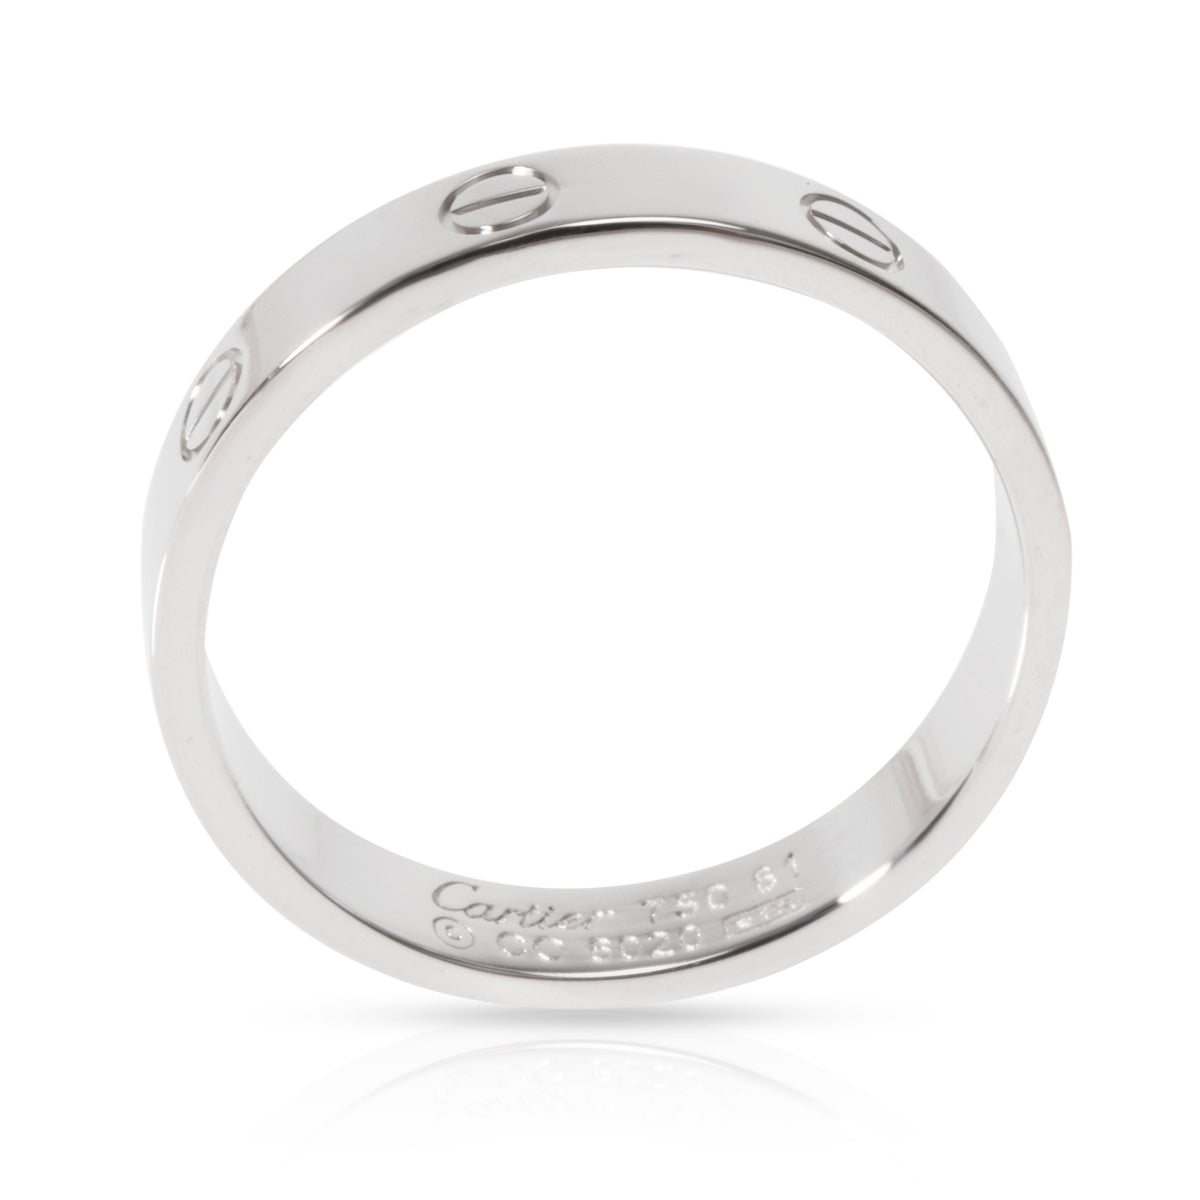 Cartier Love Ring in 18K White Gold 4mm Size 61